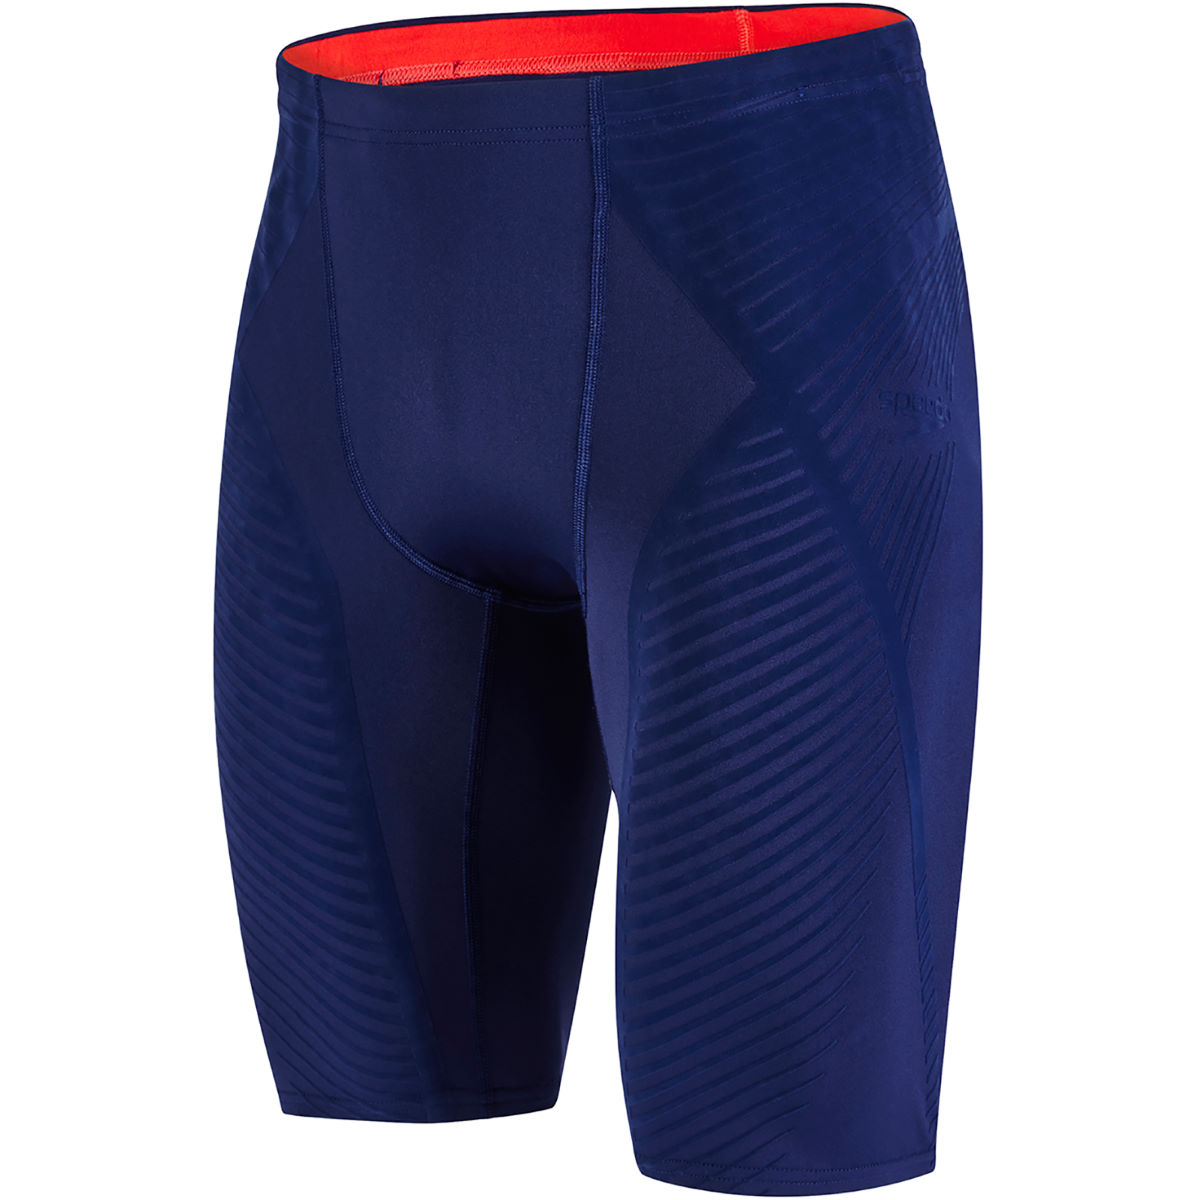 Jammer Speedo Fit Power Form - 40 Navy/Lava Red